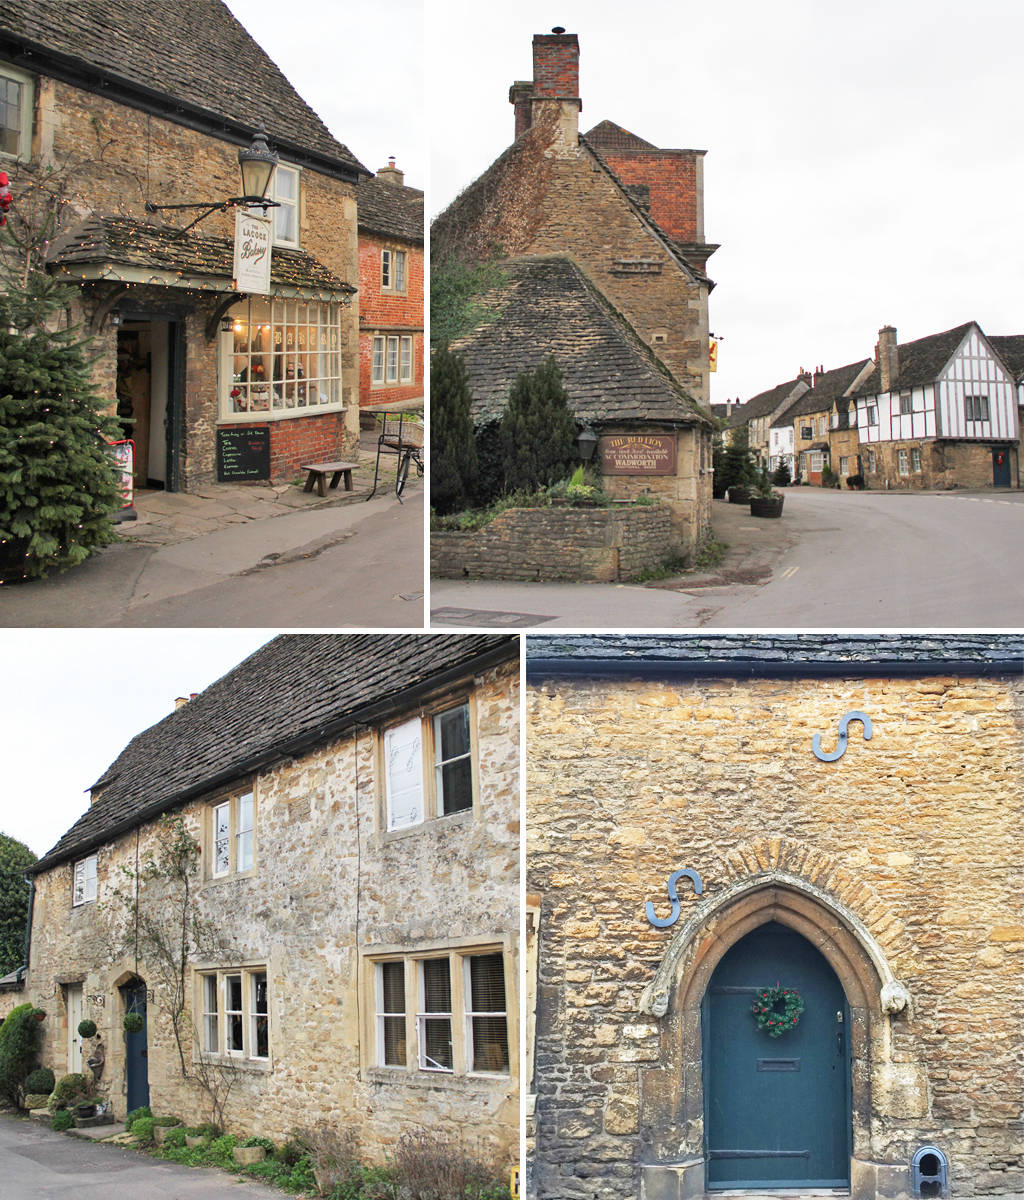 the village of lacock